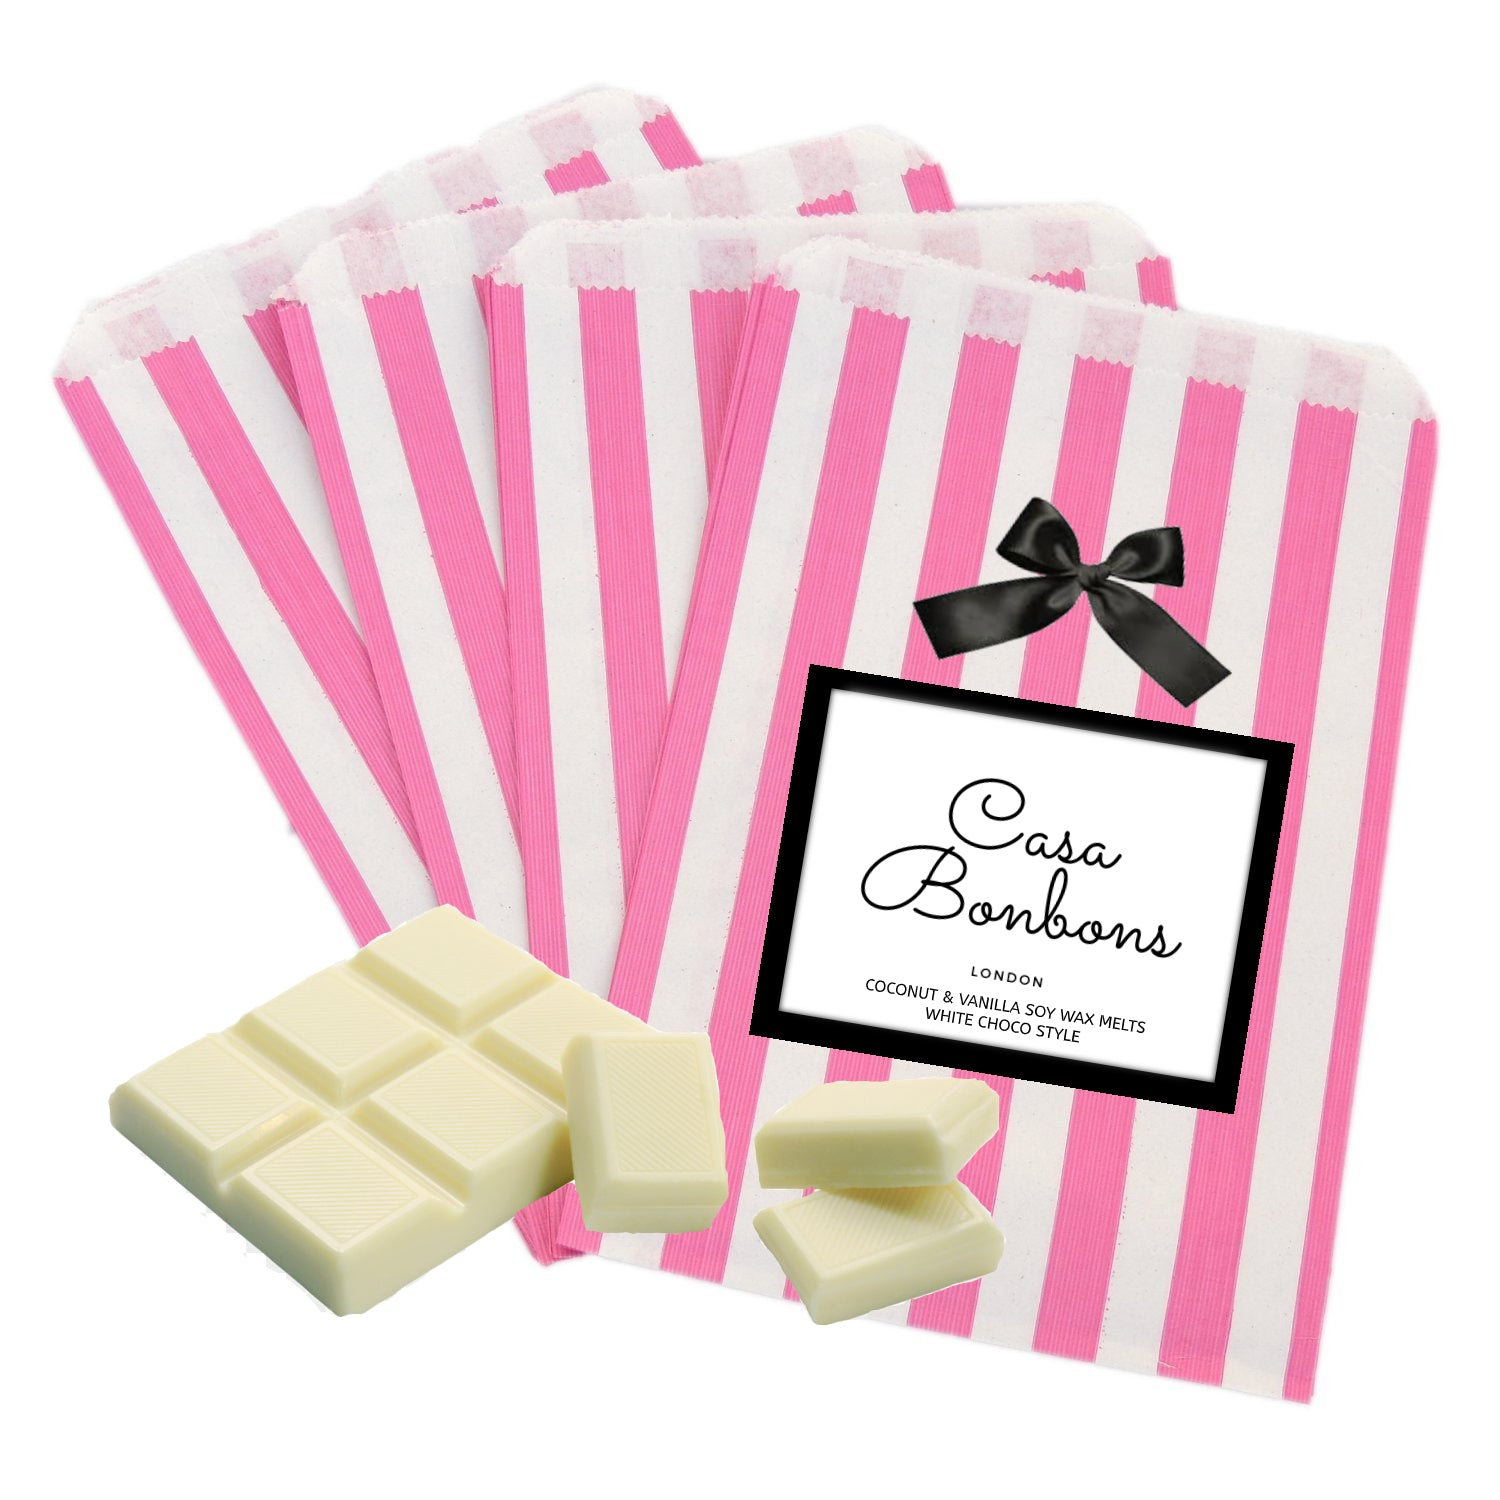 Coconut & Vanilla gentle scented white chocolate style Soy Wax Melts,  PRE ORDER delivery end of February - natoorio